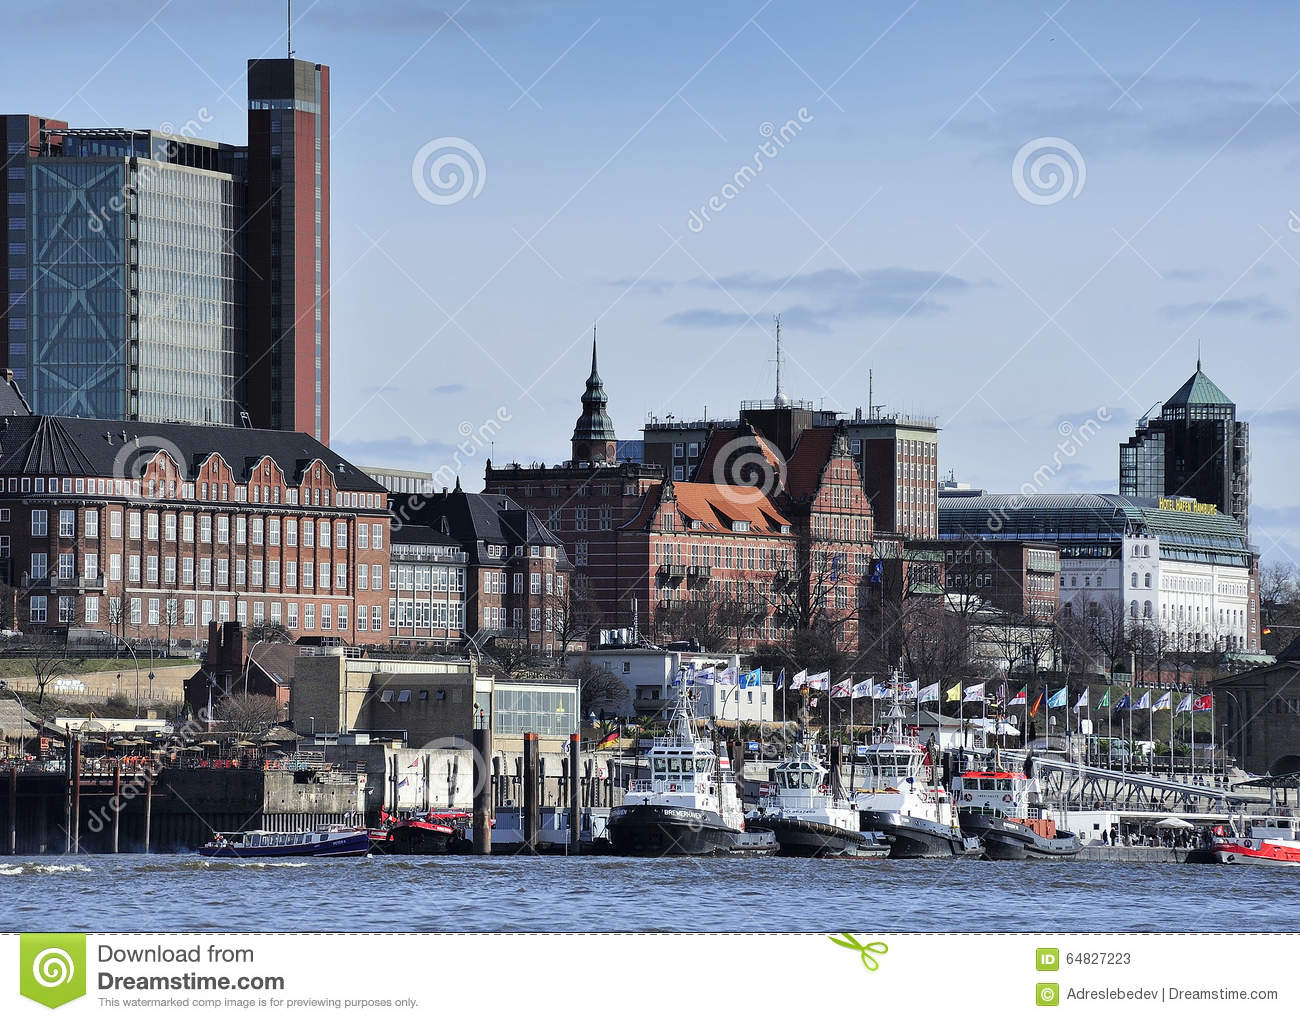 Stock photo hamburg germany riverside new - Architecture Elbe Germany Hamburg